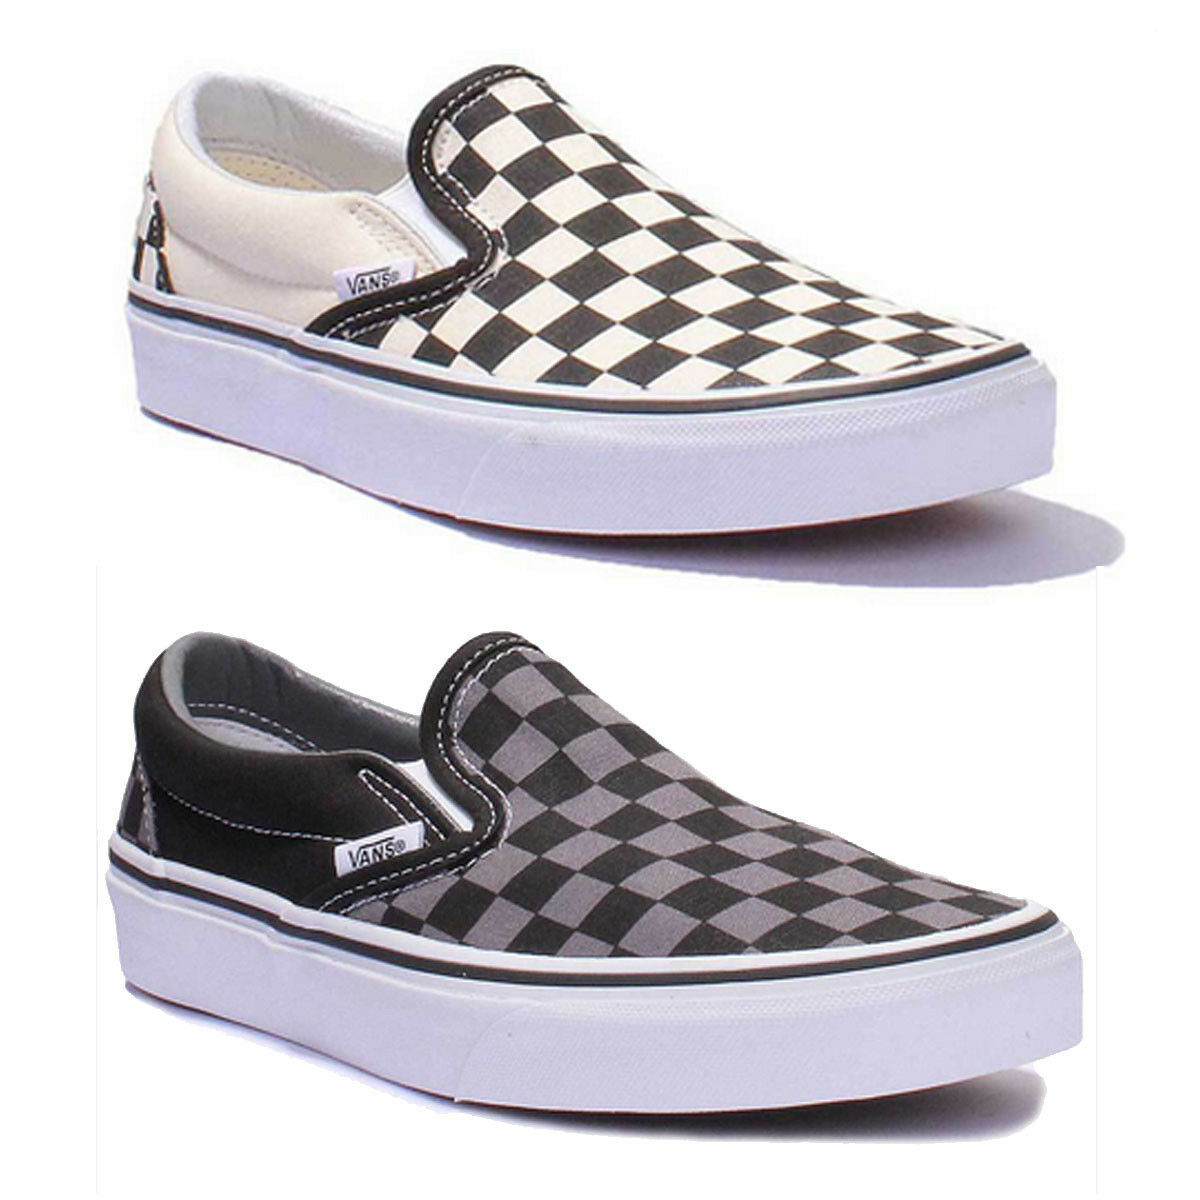 Vans Canvas Checkerboard Slip On Damens Canvas Vans Trainer 3 - 8 09a3a6